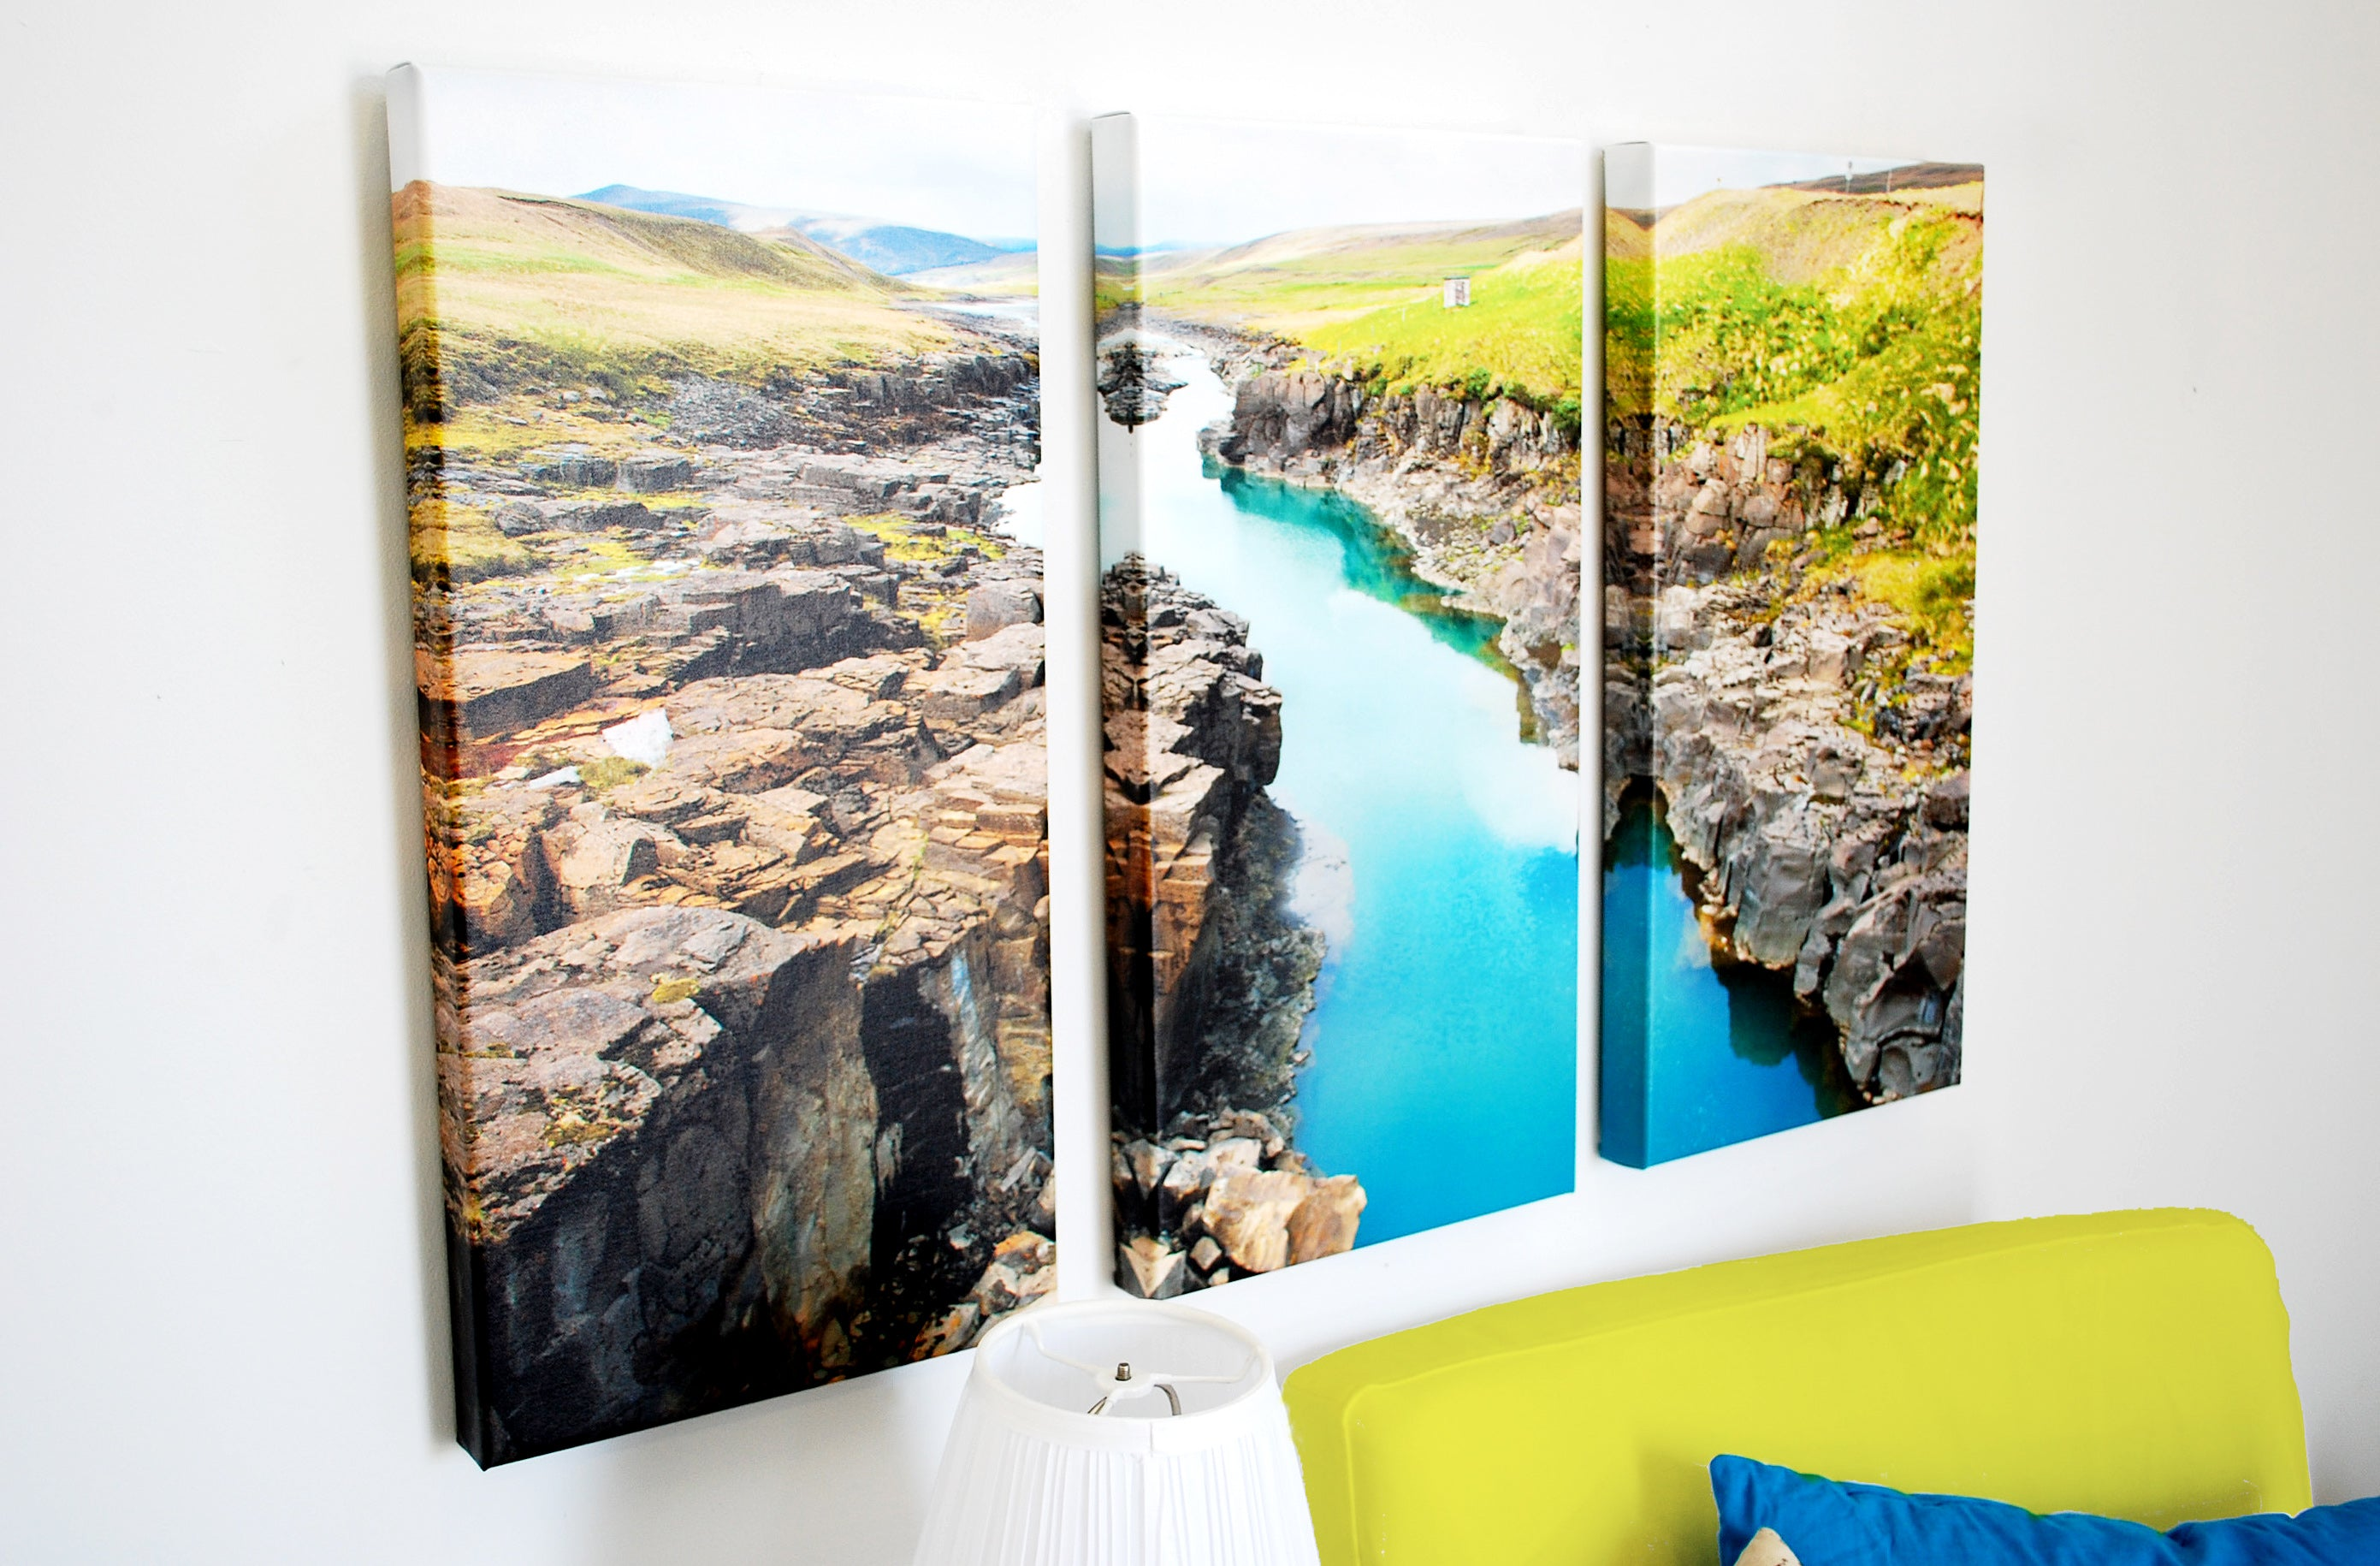 Landscape photo printed on a Posterjack Three-Panel Triptych Canvas Print